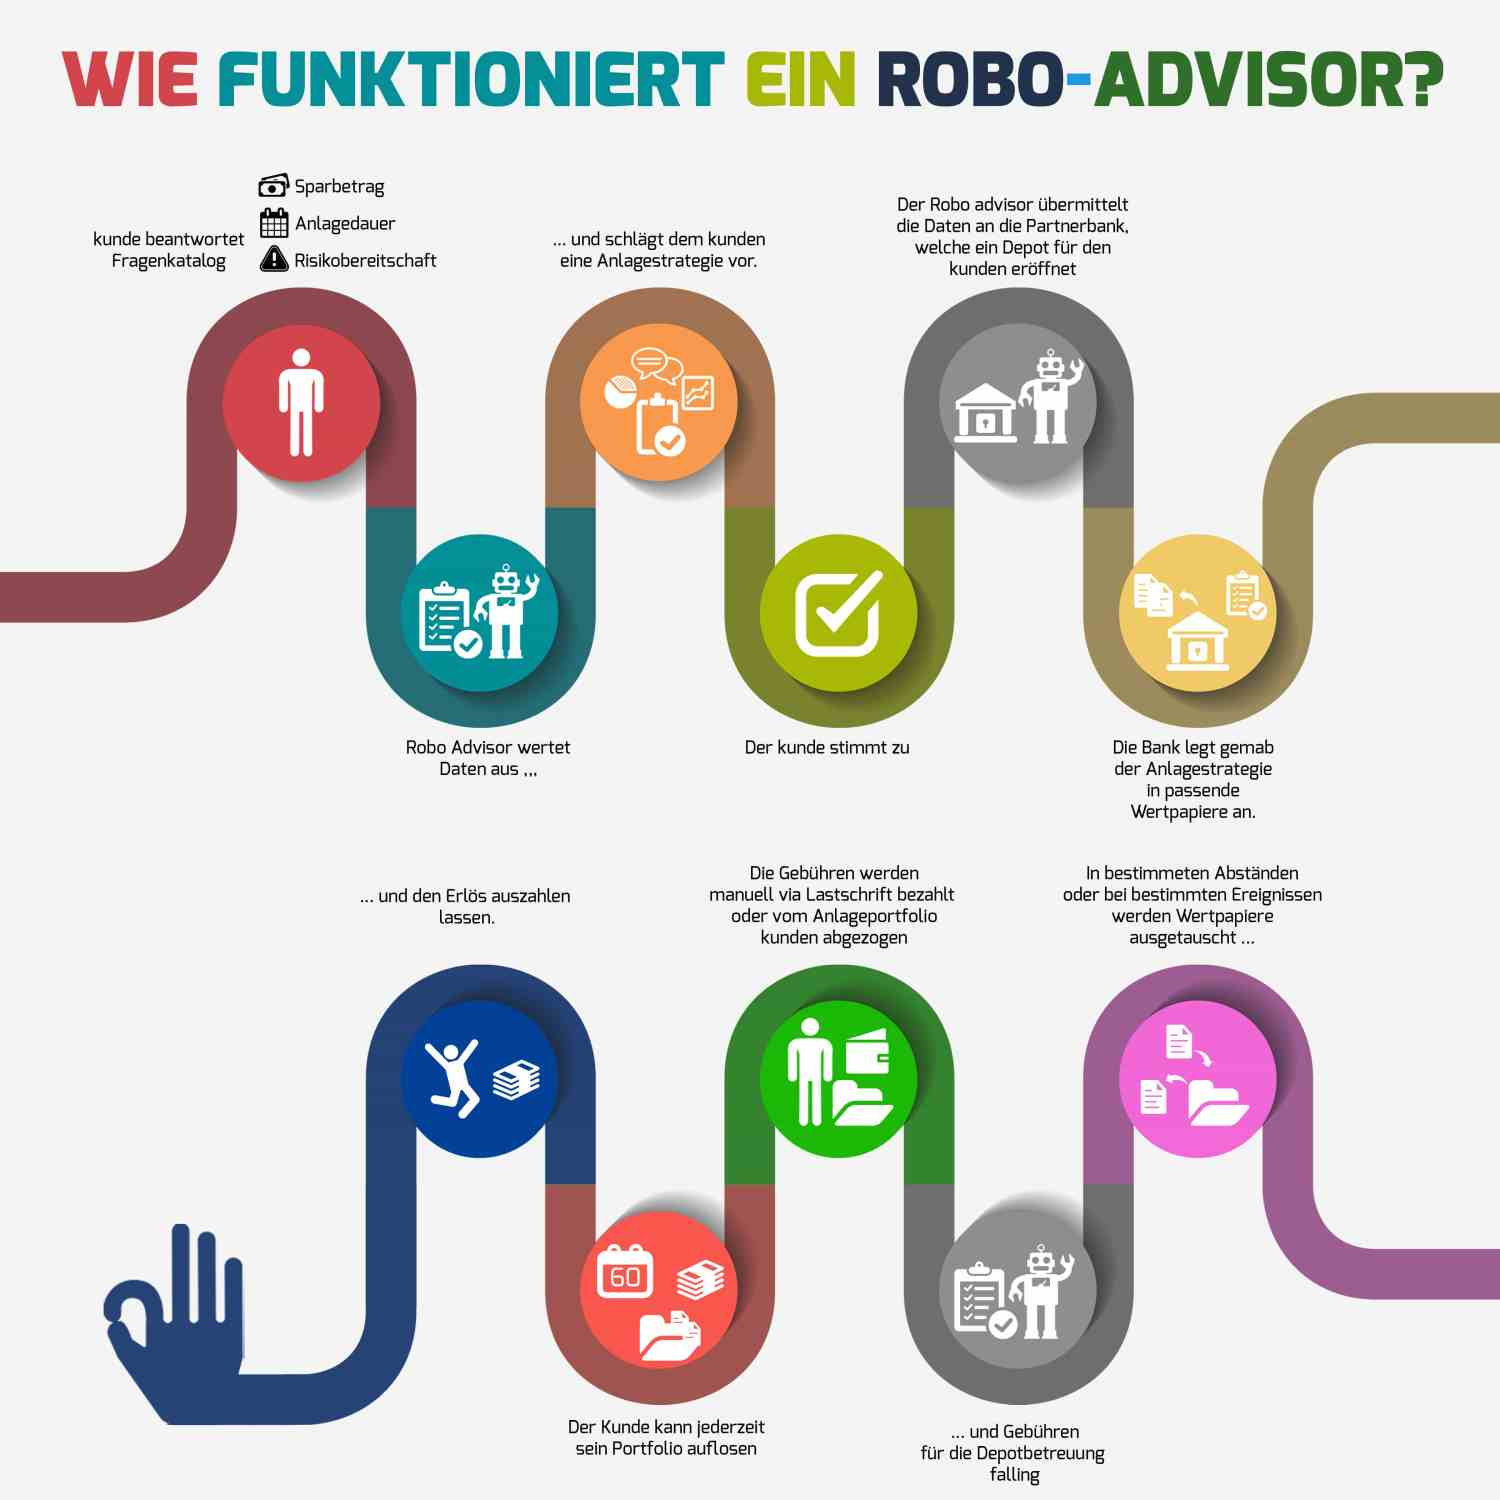 Funktionsweise eines Robo-Advisor